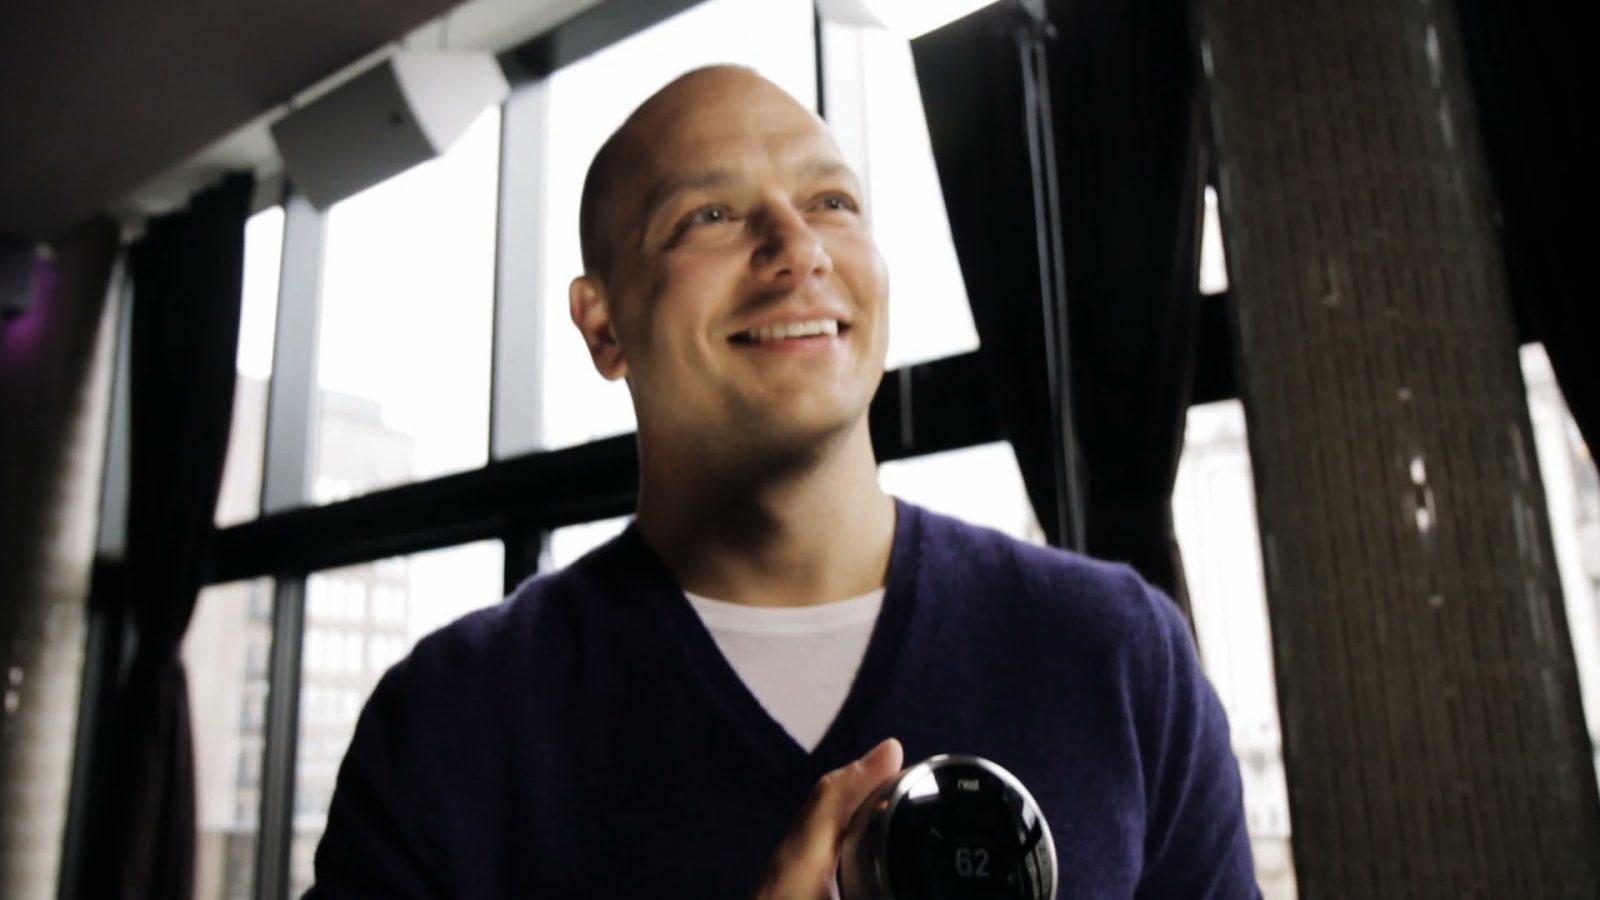 Tony Fadell answers questions about iPod development on Twitter